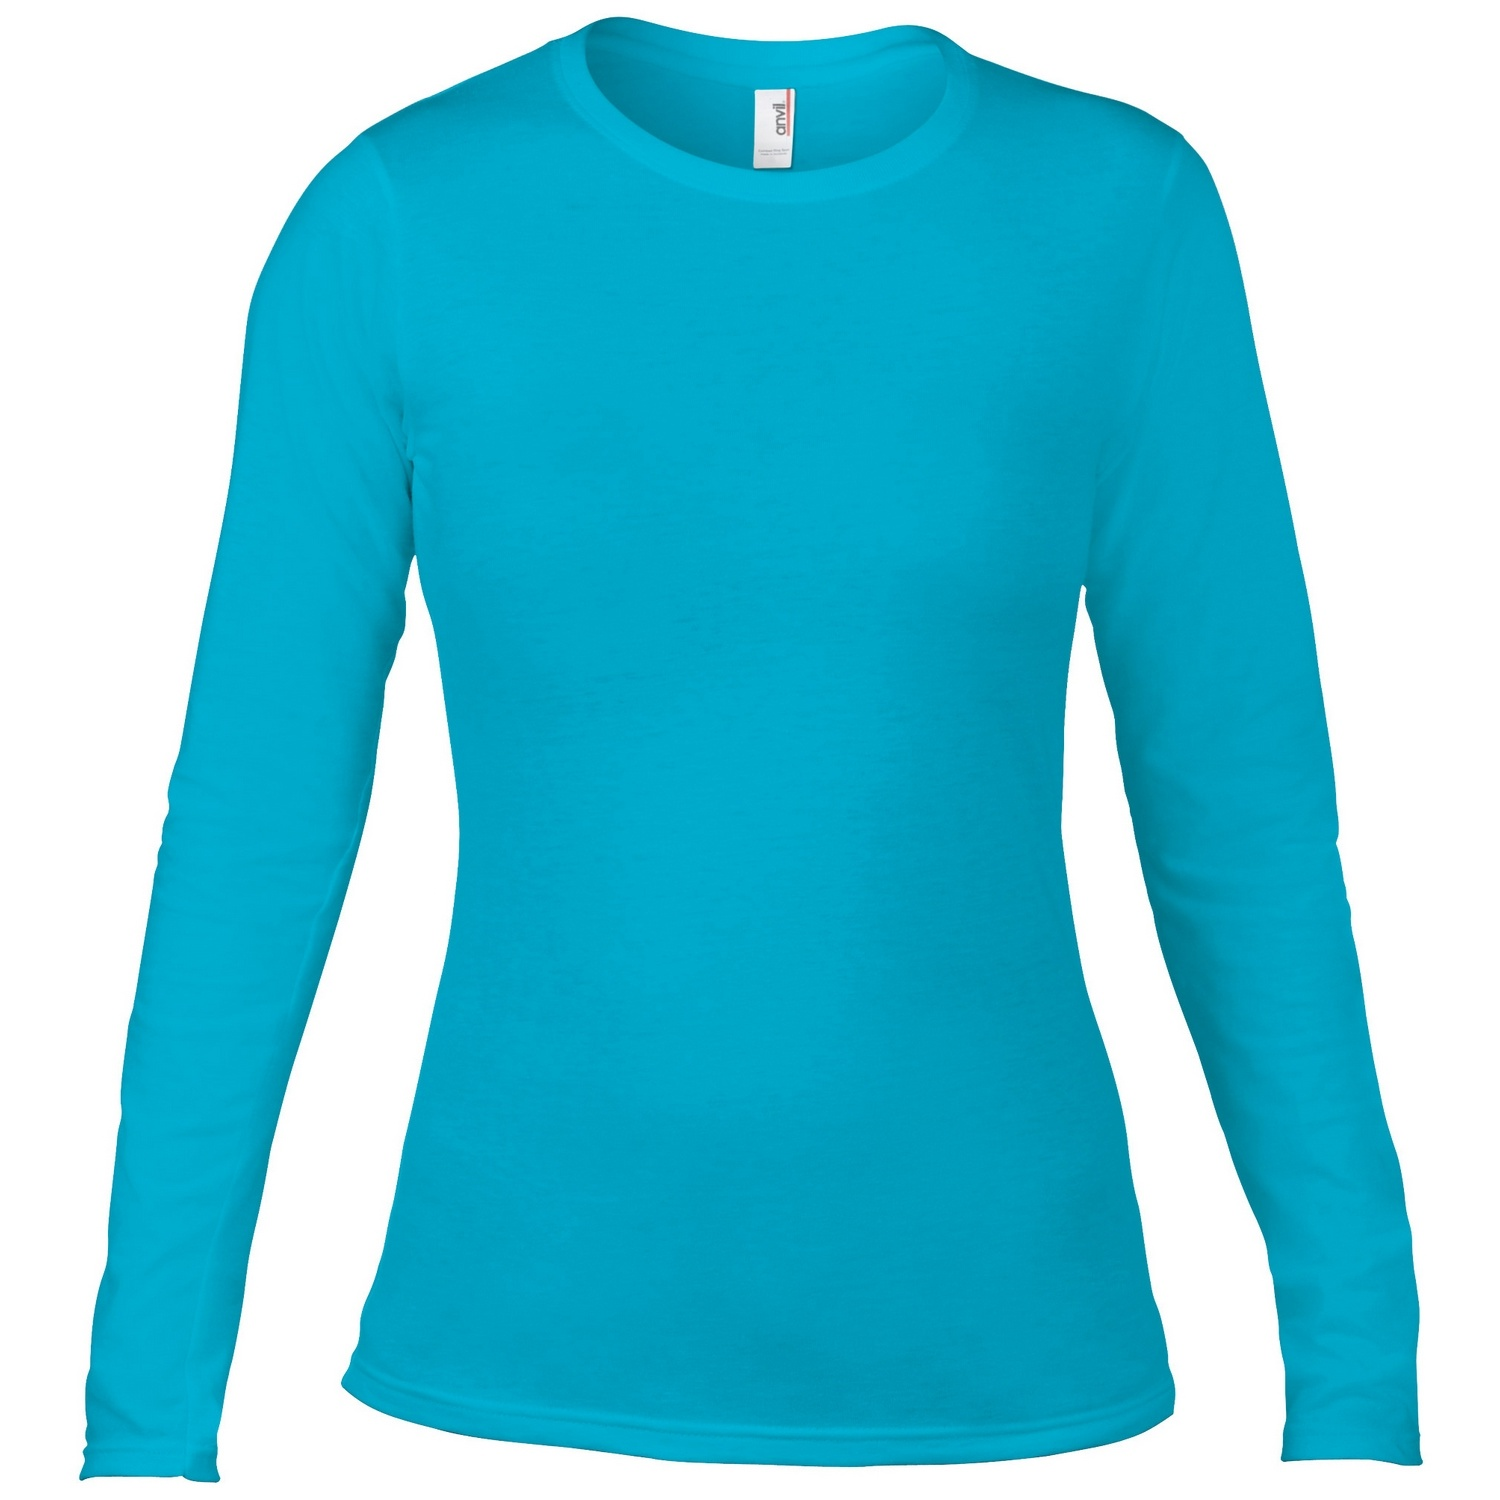 Find women's fitted long sleeve shirts at ShopStyle. Shop the latest collection of women's fitted long sleeve shirts from the most popular stores -.